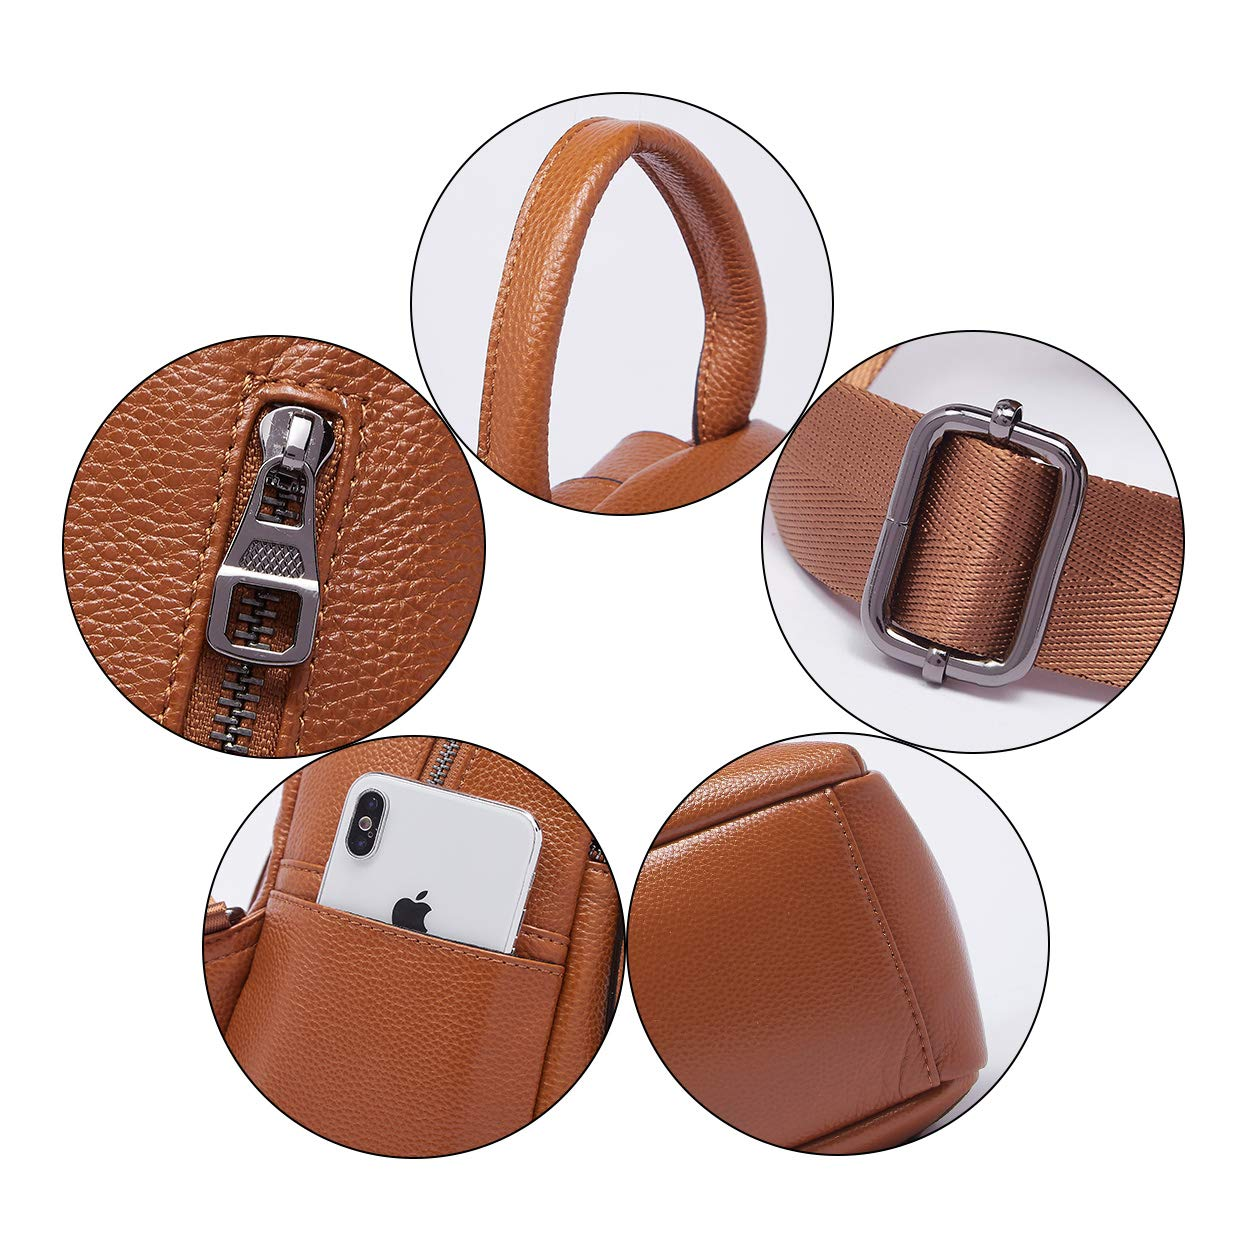 BOYATU Genuine Leather Backpack Purse for Women Anti-theft Small Shoulder Bags by BOYATU (Image #5)